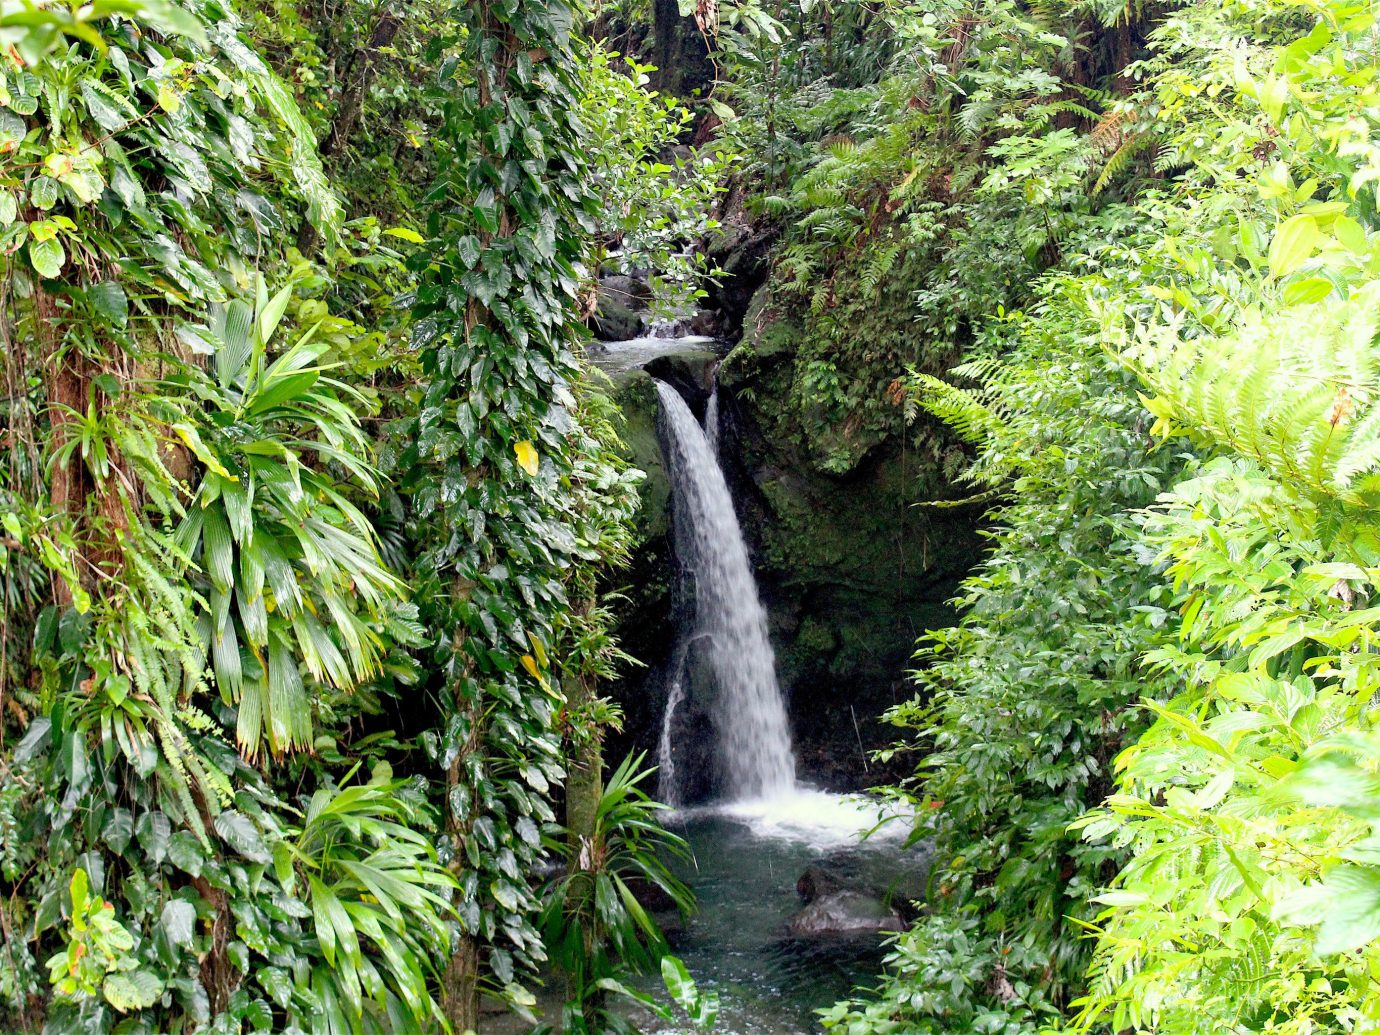 Trip Ideas tree outdoor habitat Nature vegetation rainforest natural environment green Waterfall ecosystem Forest botany old growth forest water woodland water feature Jungle stream leaf Garden branch flower autumn surrounded wooded lush